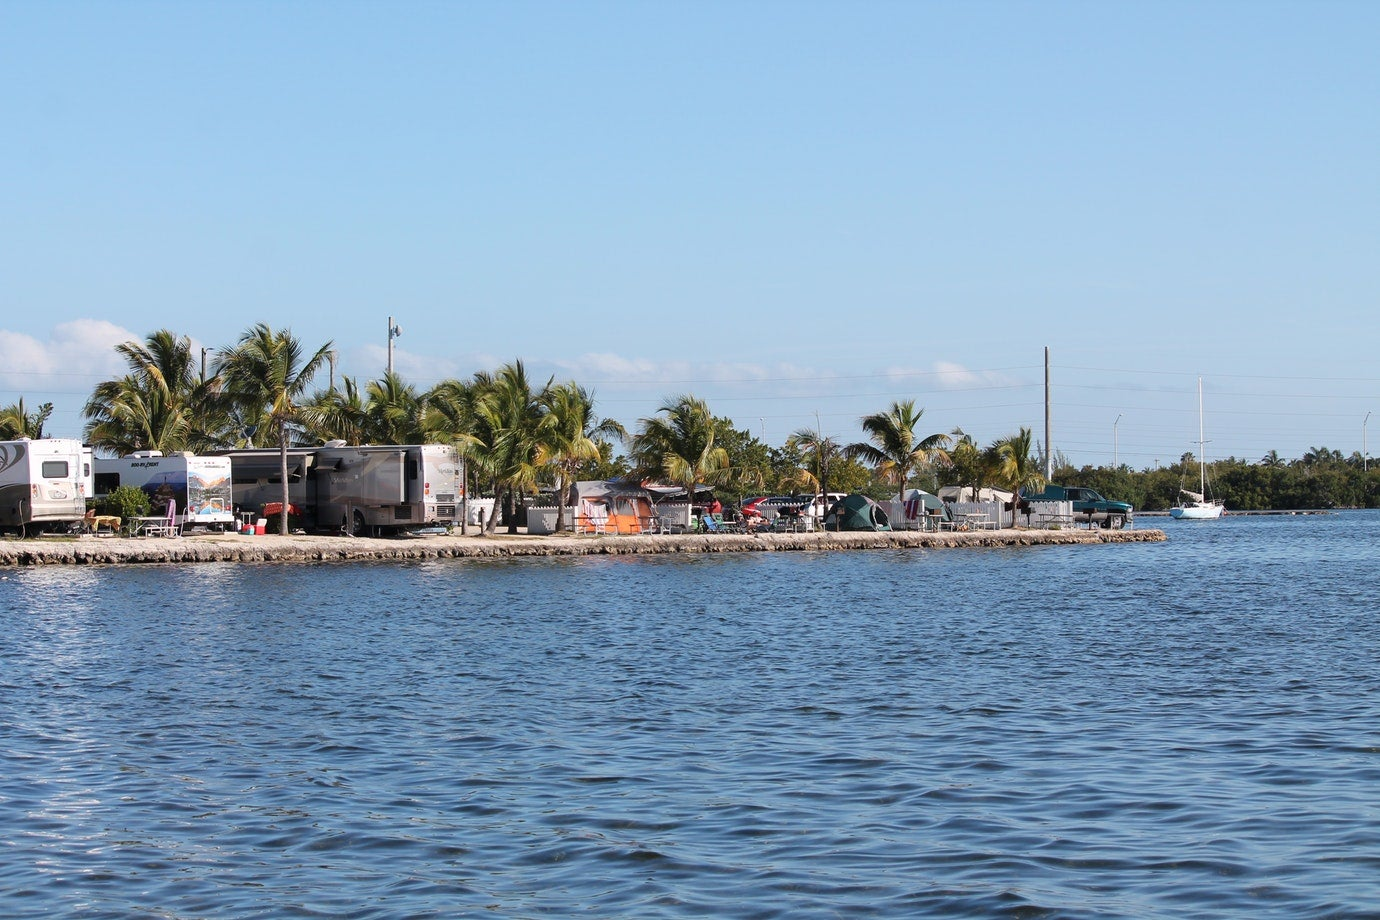 waterfront campsites visible from across the water at boyds key west campground